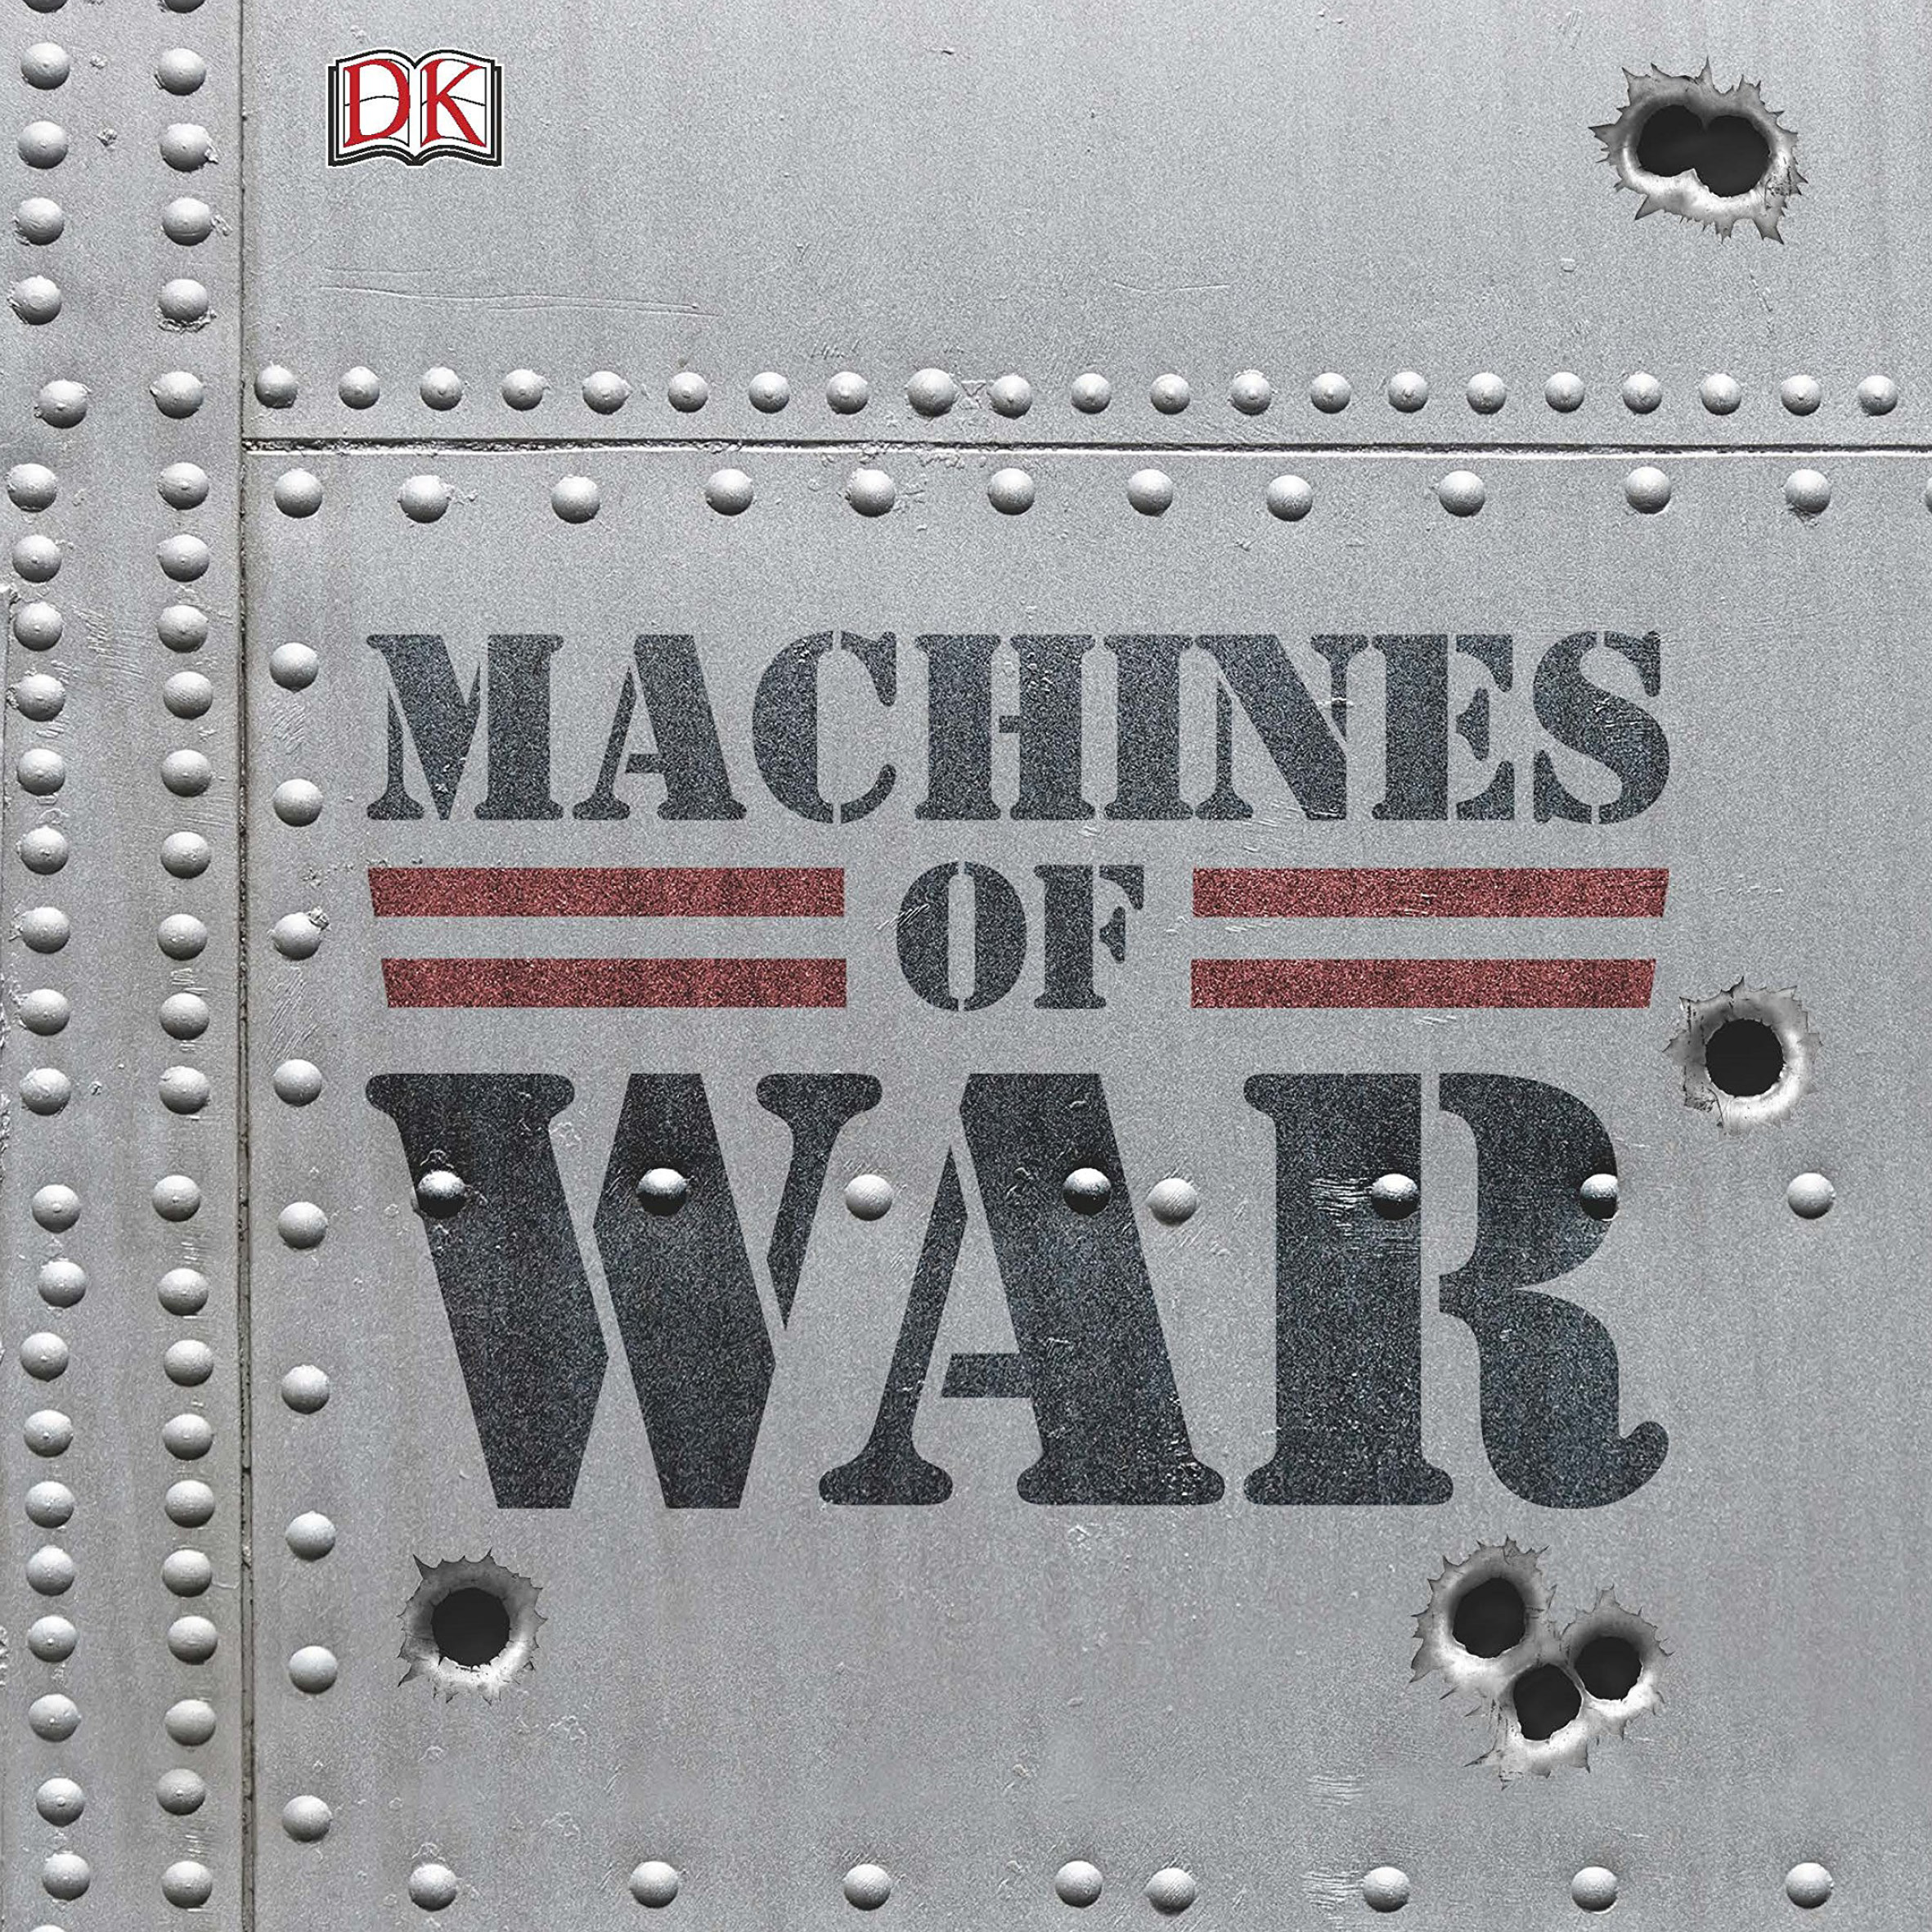 66 Dynamo Machines of War_THUMB